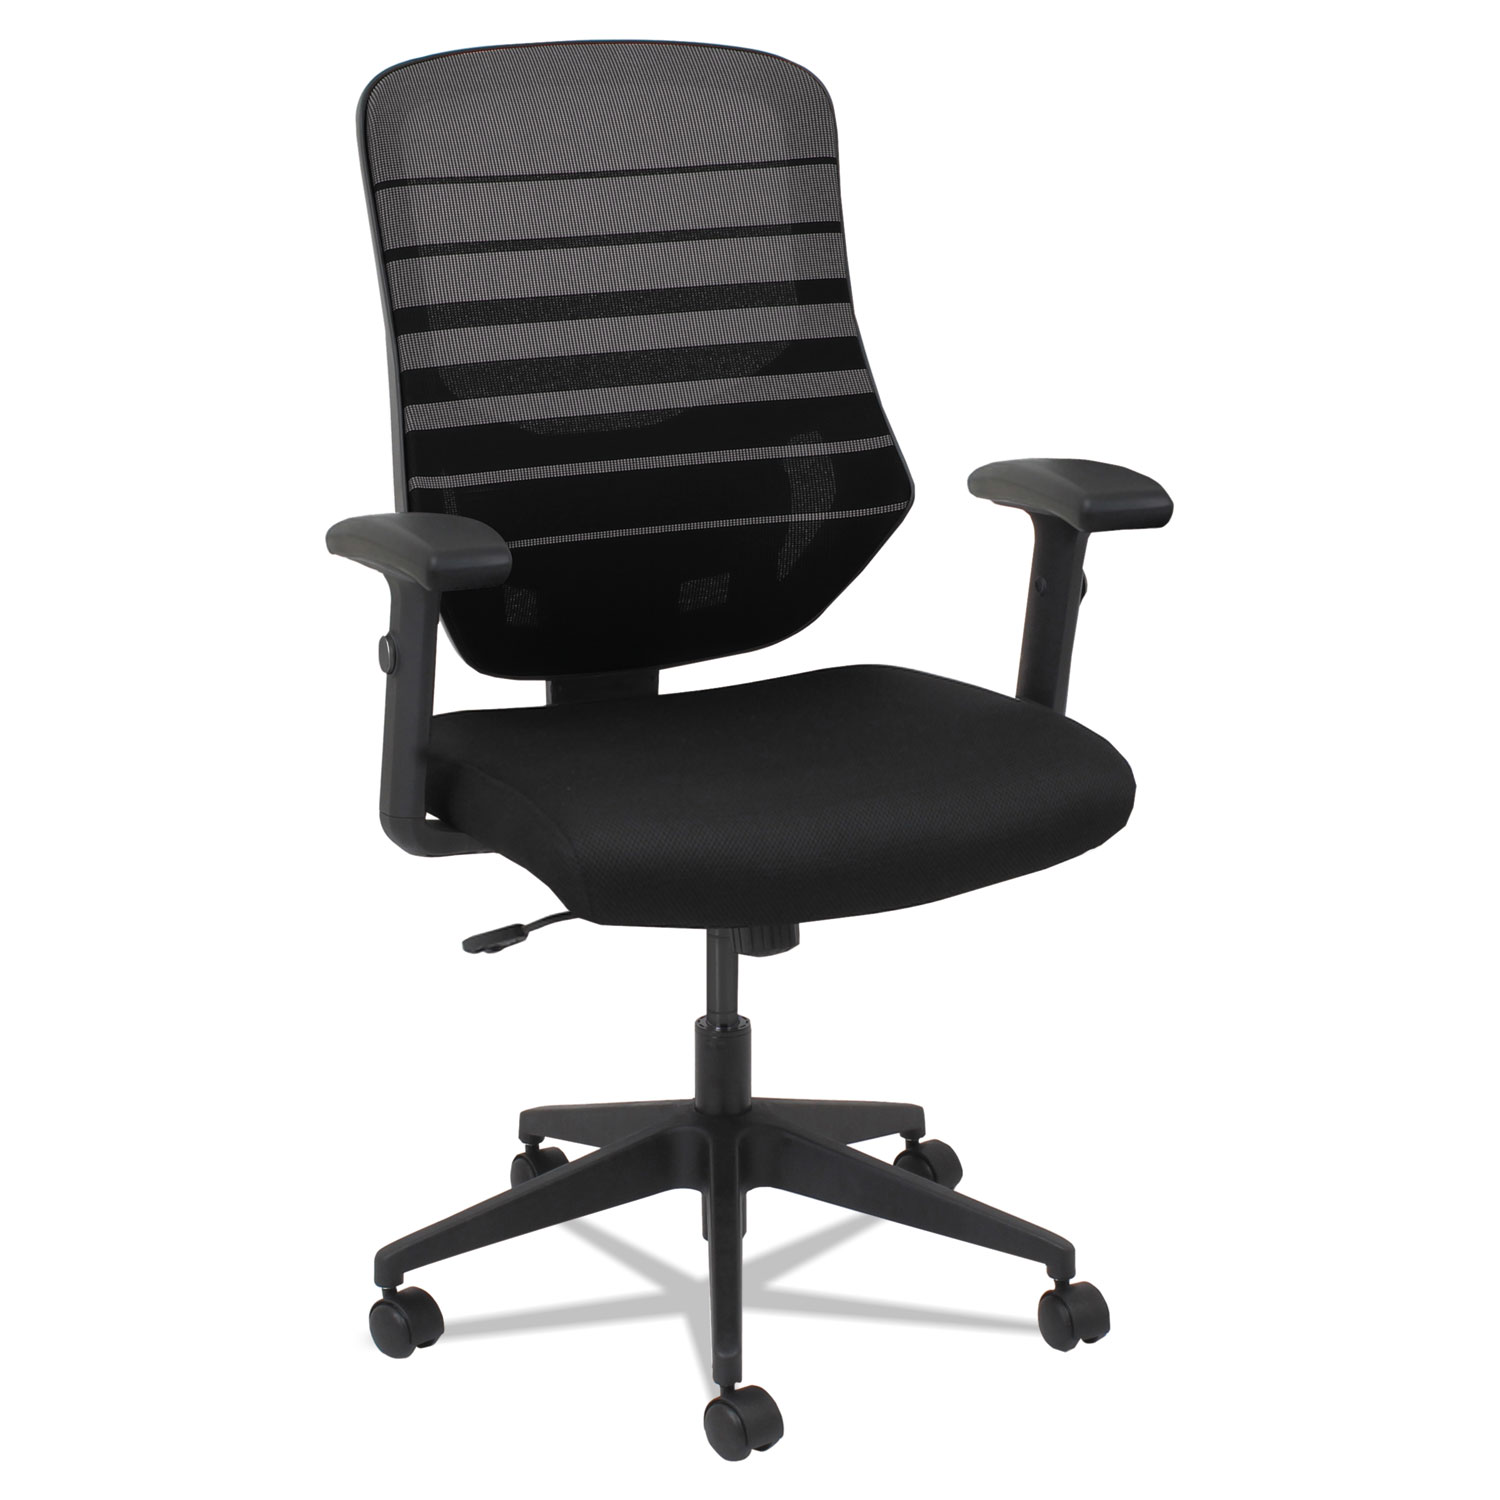 Alera Office Chairs Alera Embre Series Mesh Mid Back Chair Supports Up To 275 Lbs Black Seat Taupe Back Black Base